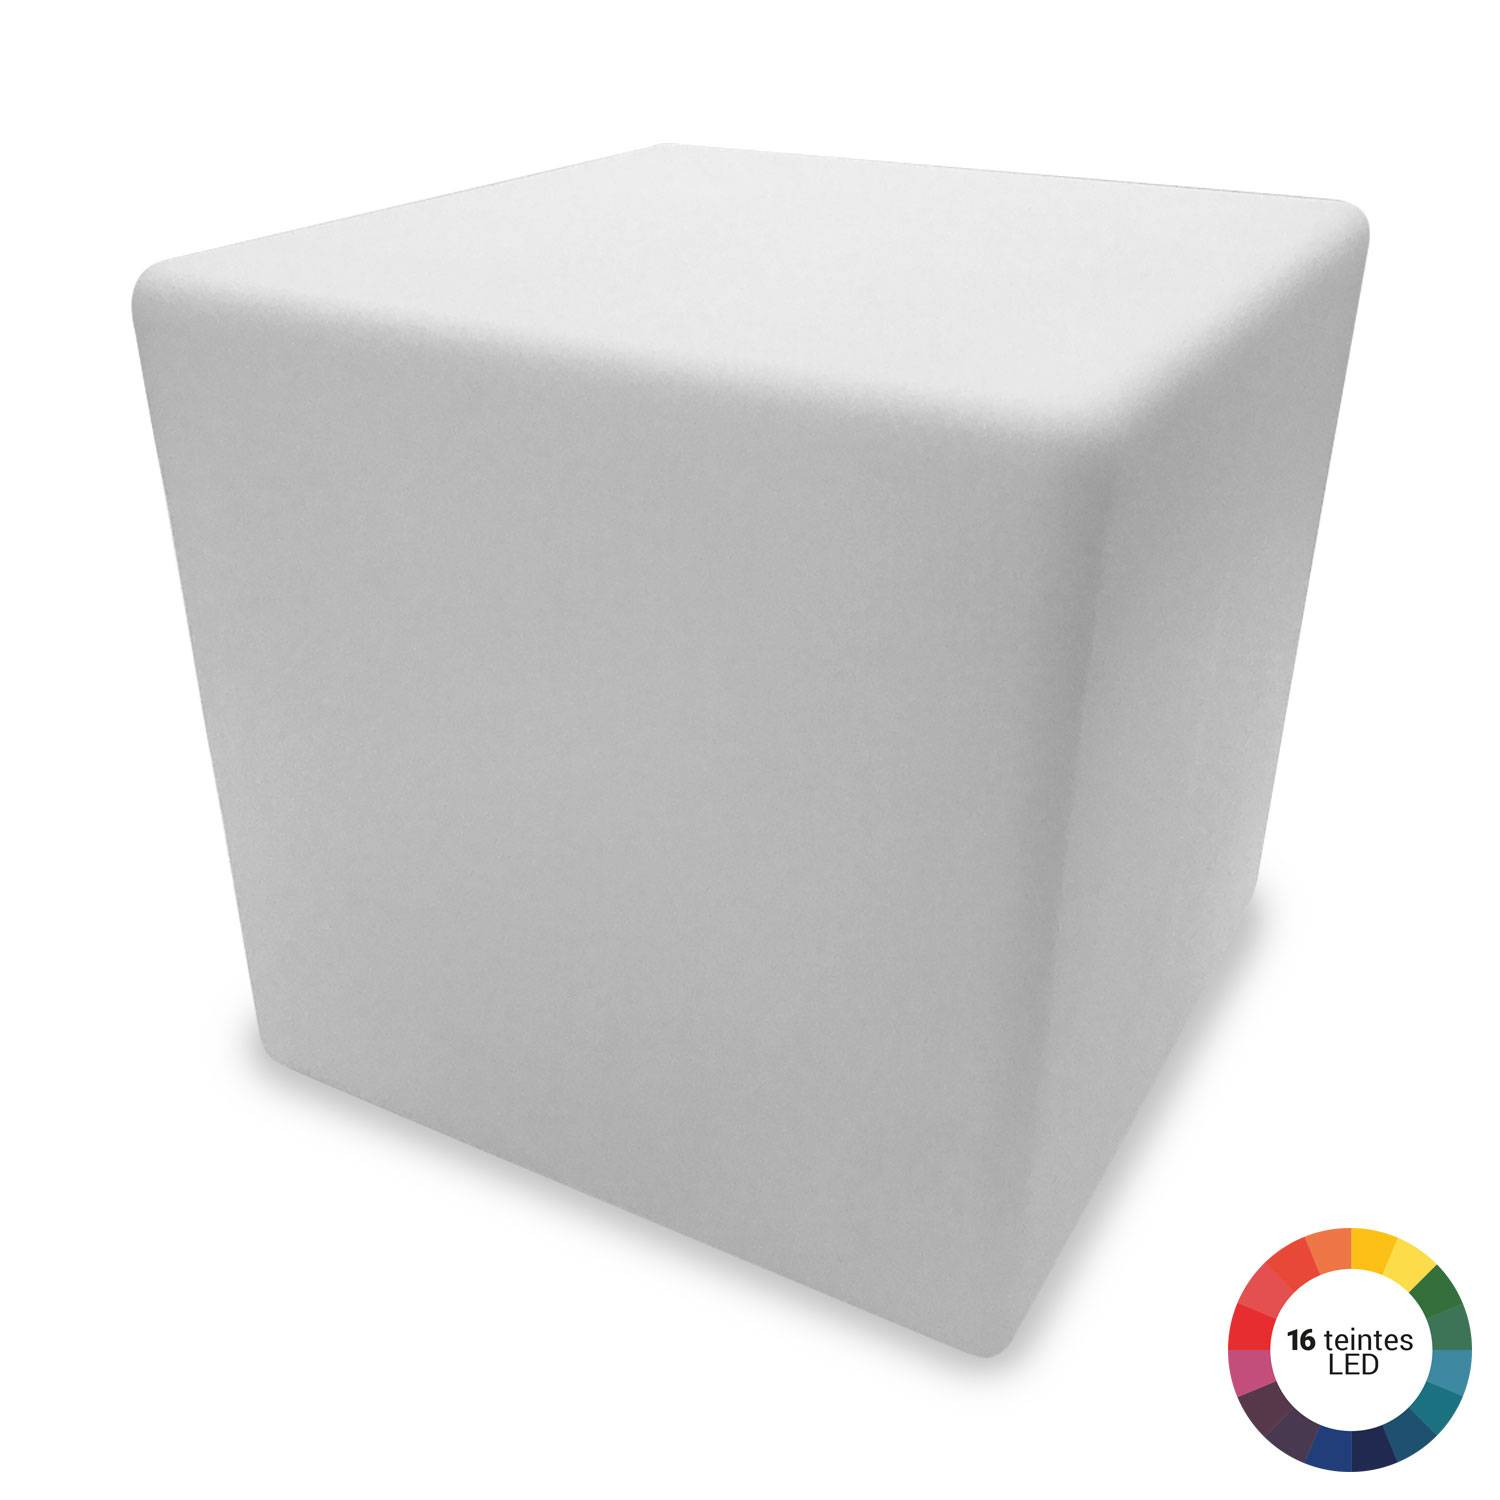 Cube lumineux LED 40cm multicolore NAOS